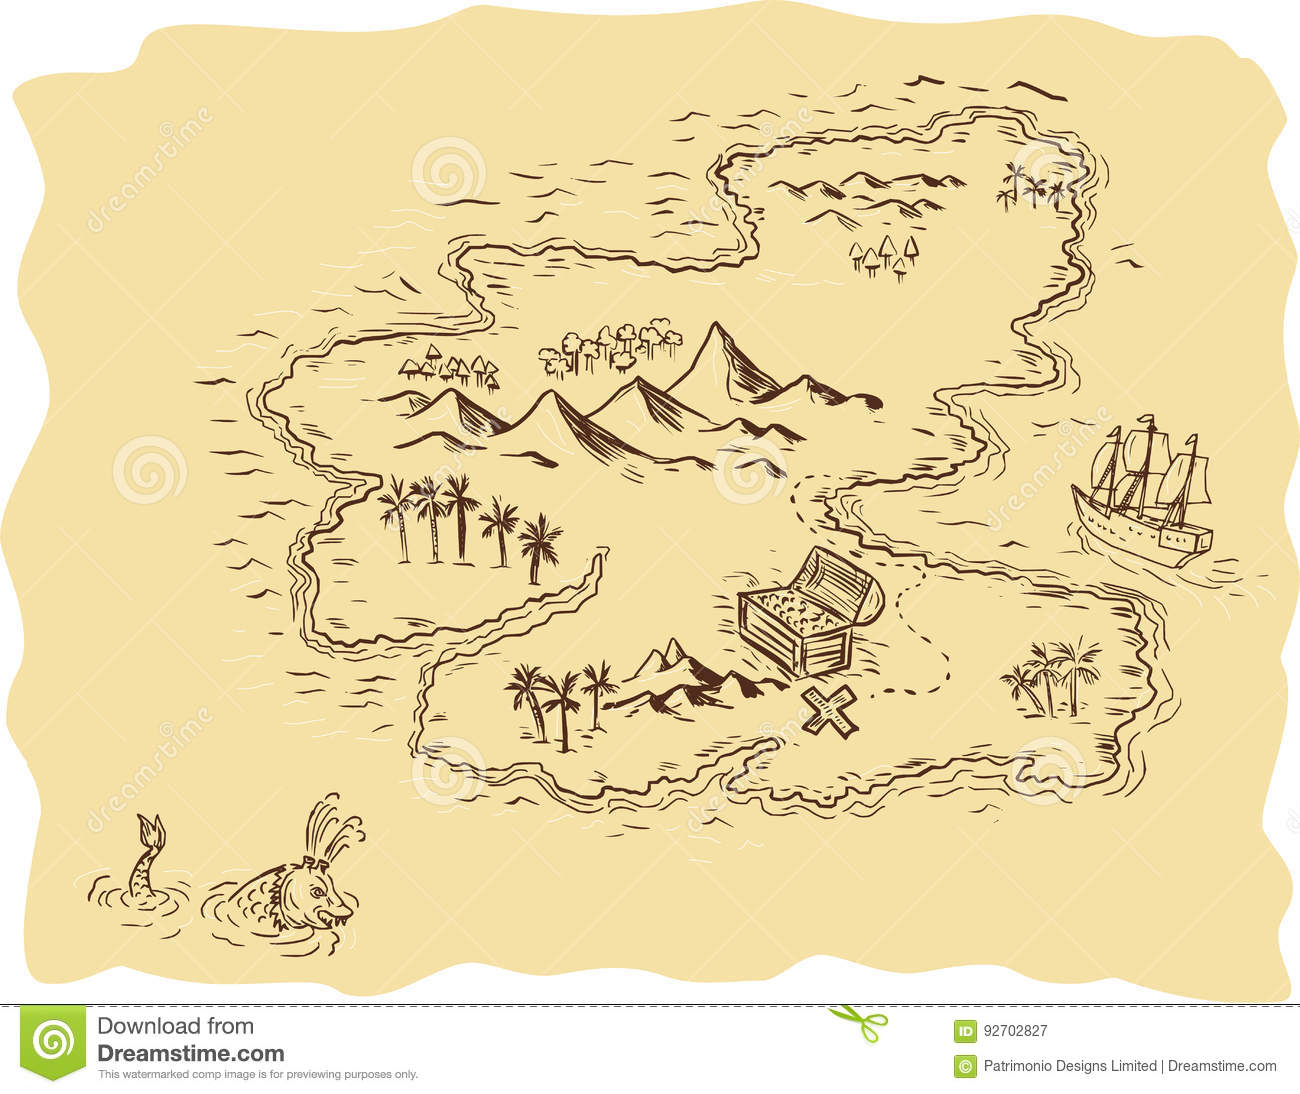 Pirate Treasure Map Sailing Ship Drawing Stock Illustration ... on map legend, map that you can draw on, map isometric world, map science projects, map cartoon, map of and or, map quilt, map card, map activity for students, map key, map collage, map artist, map illustration, map watercolor, map of home, map symbols, map scale, map icon location, map photography, map of an imaginary island,